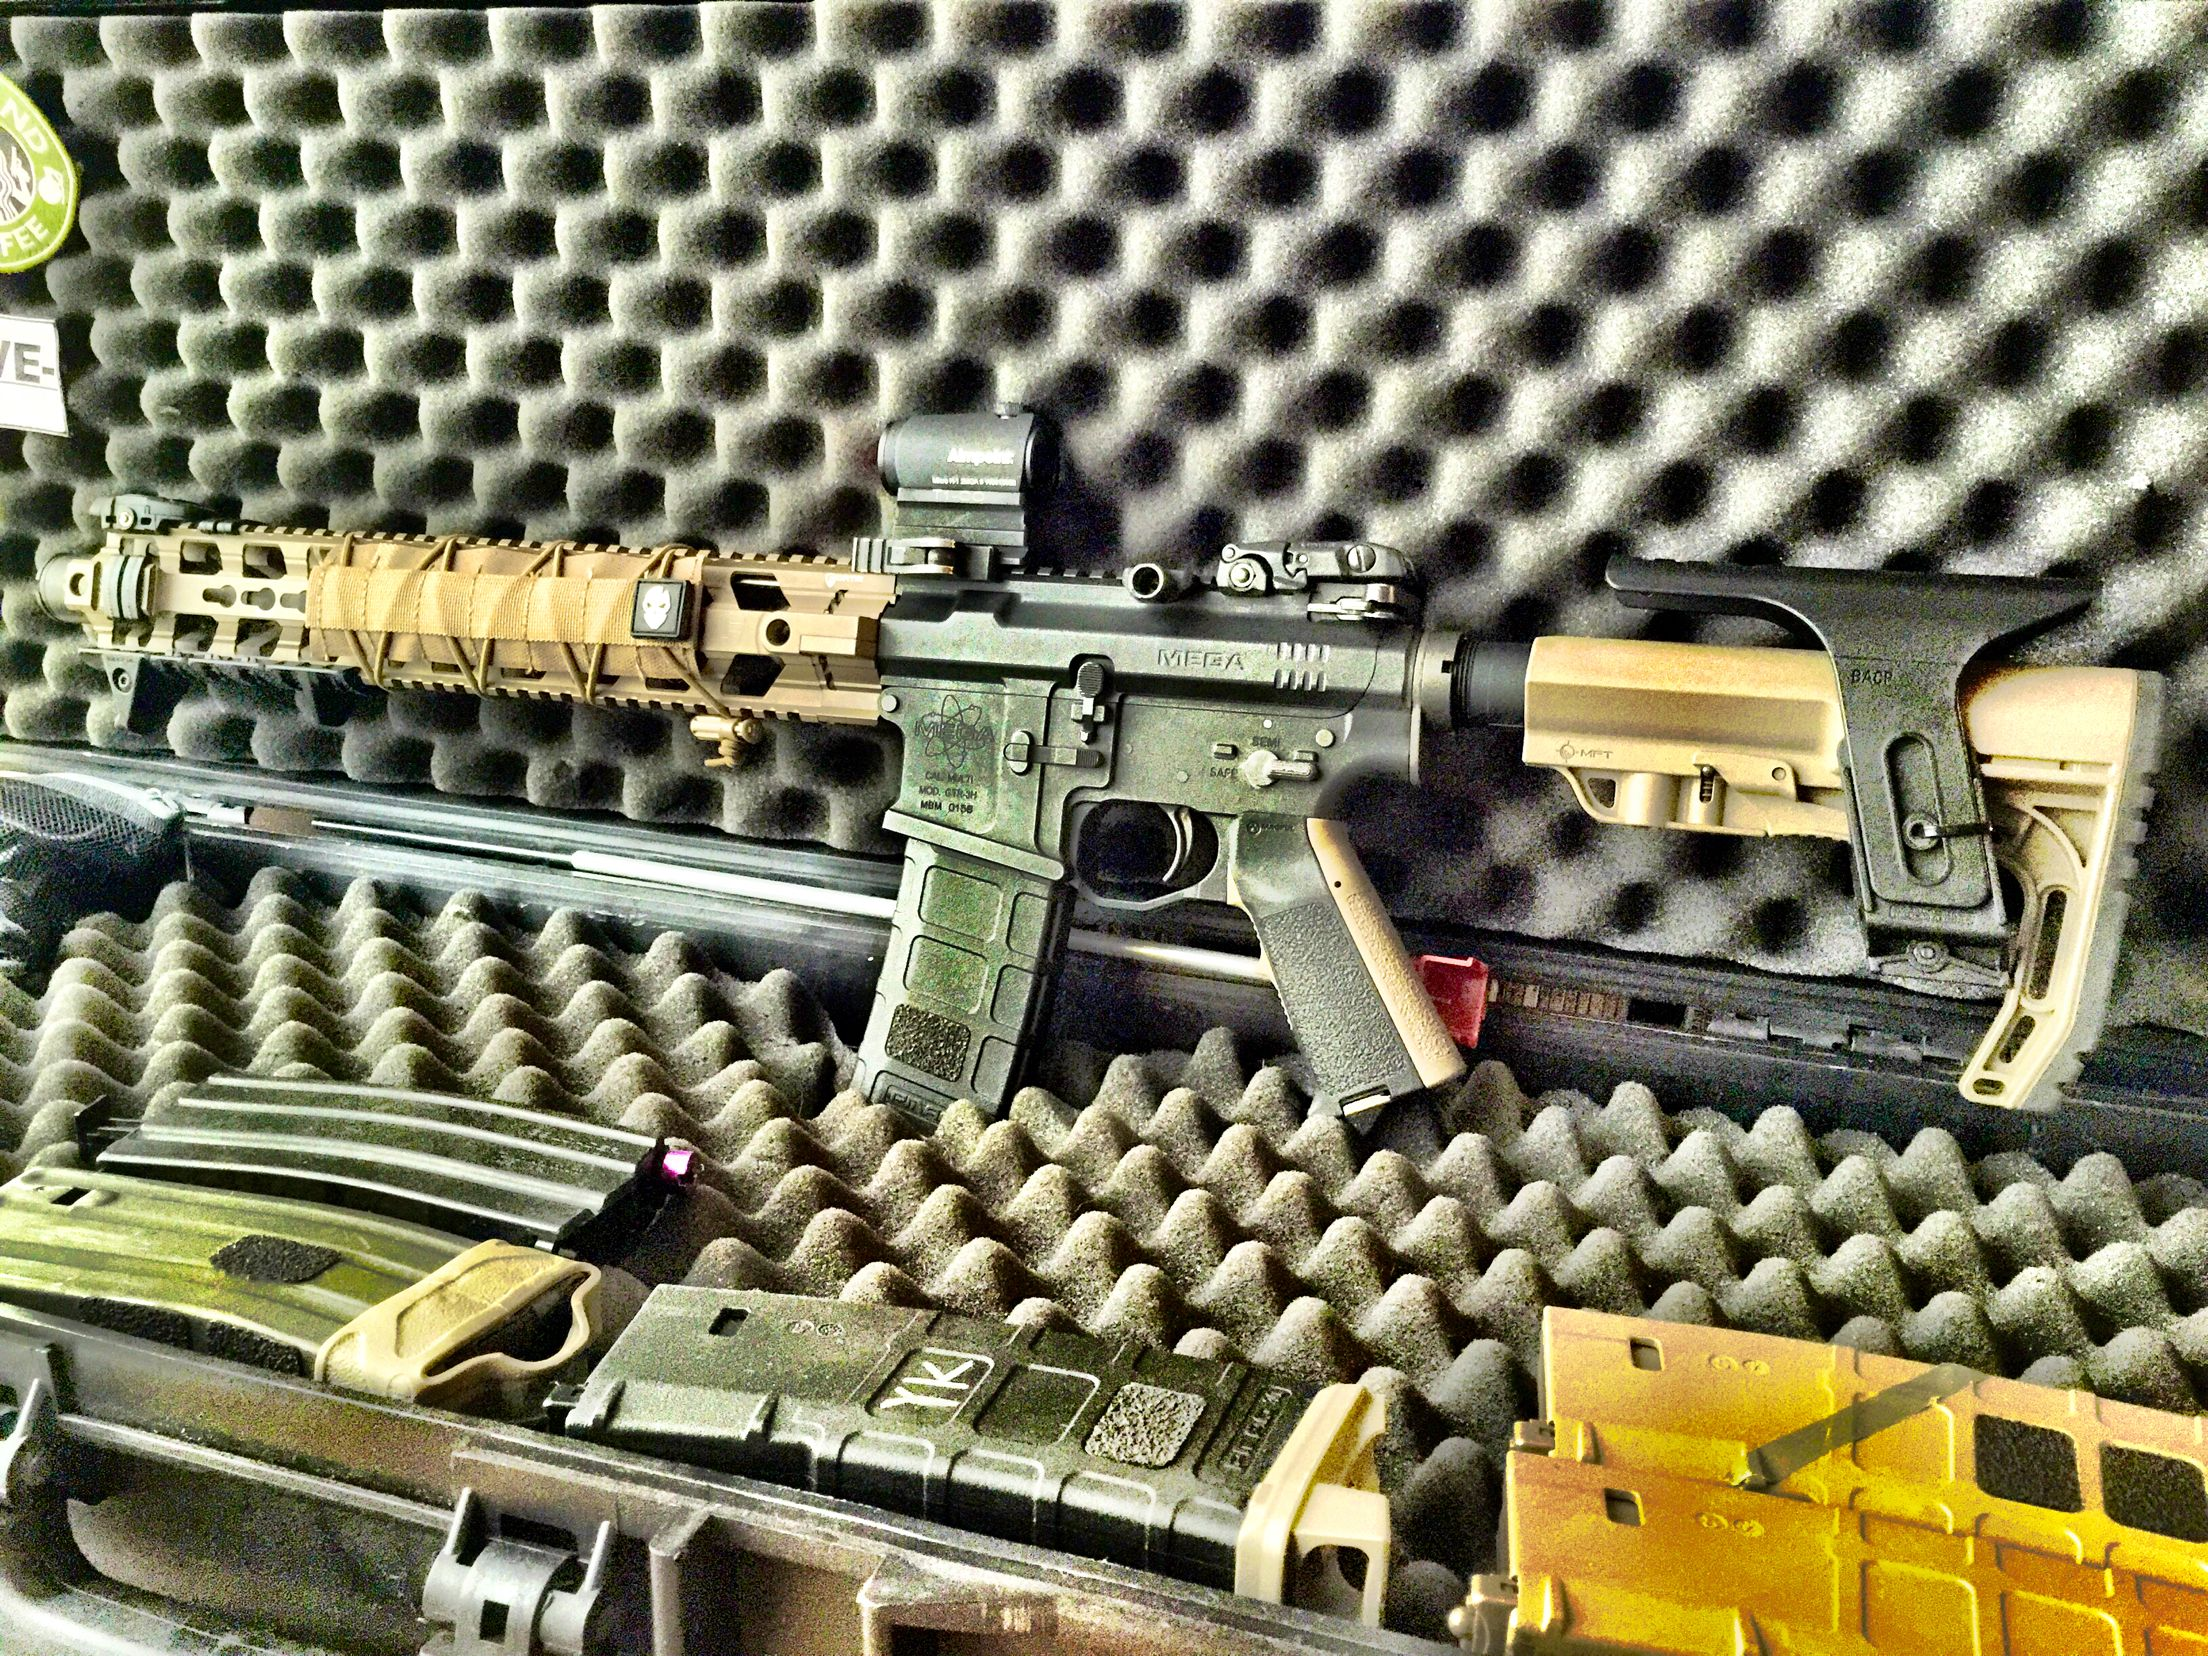 systema ptw systema ptw pinterest guns airsoft and weapons